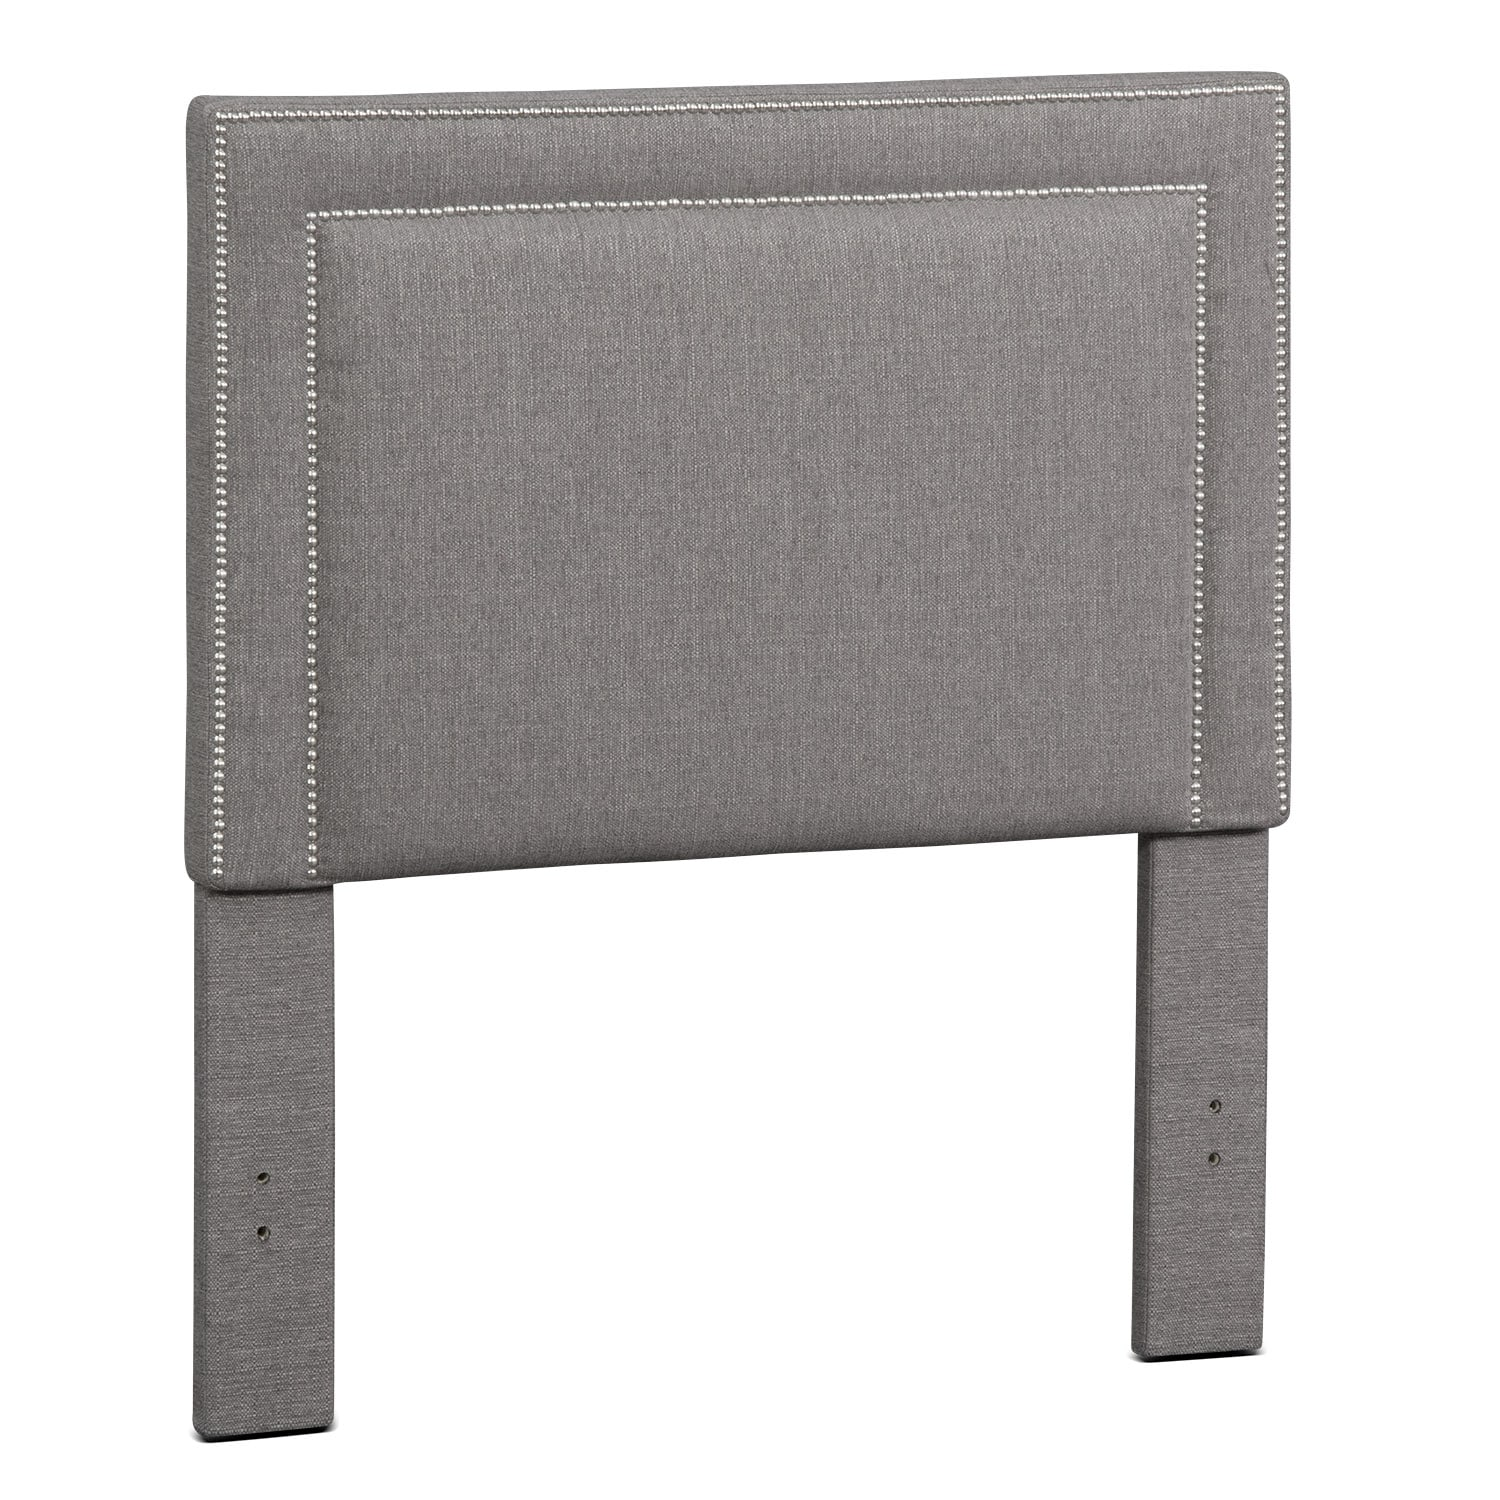 Natalie Full Upholstered Headboard - Granite